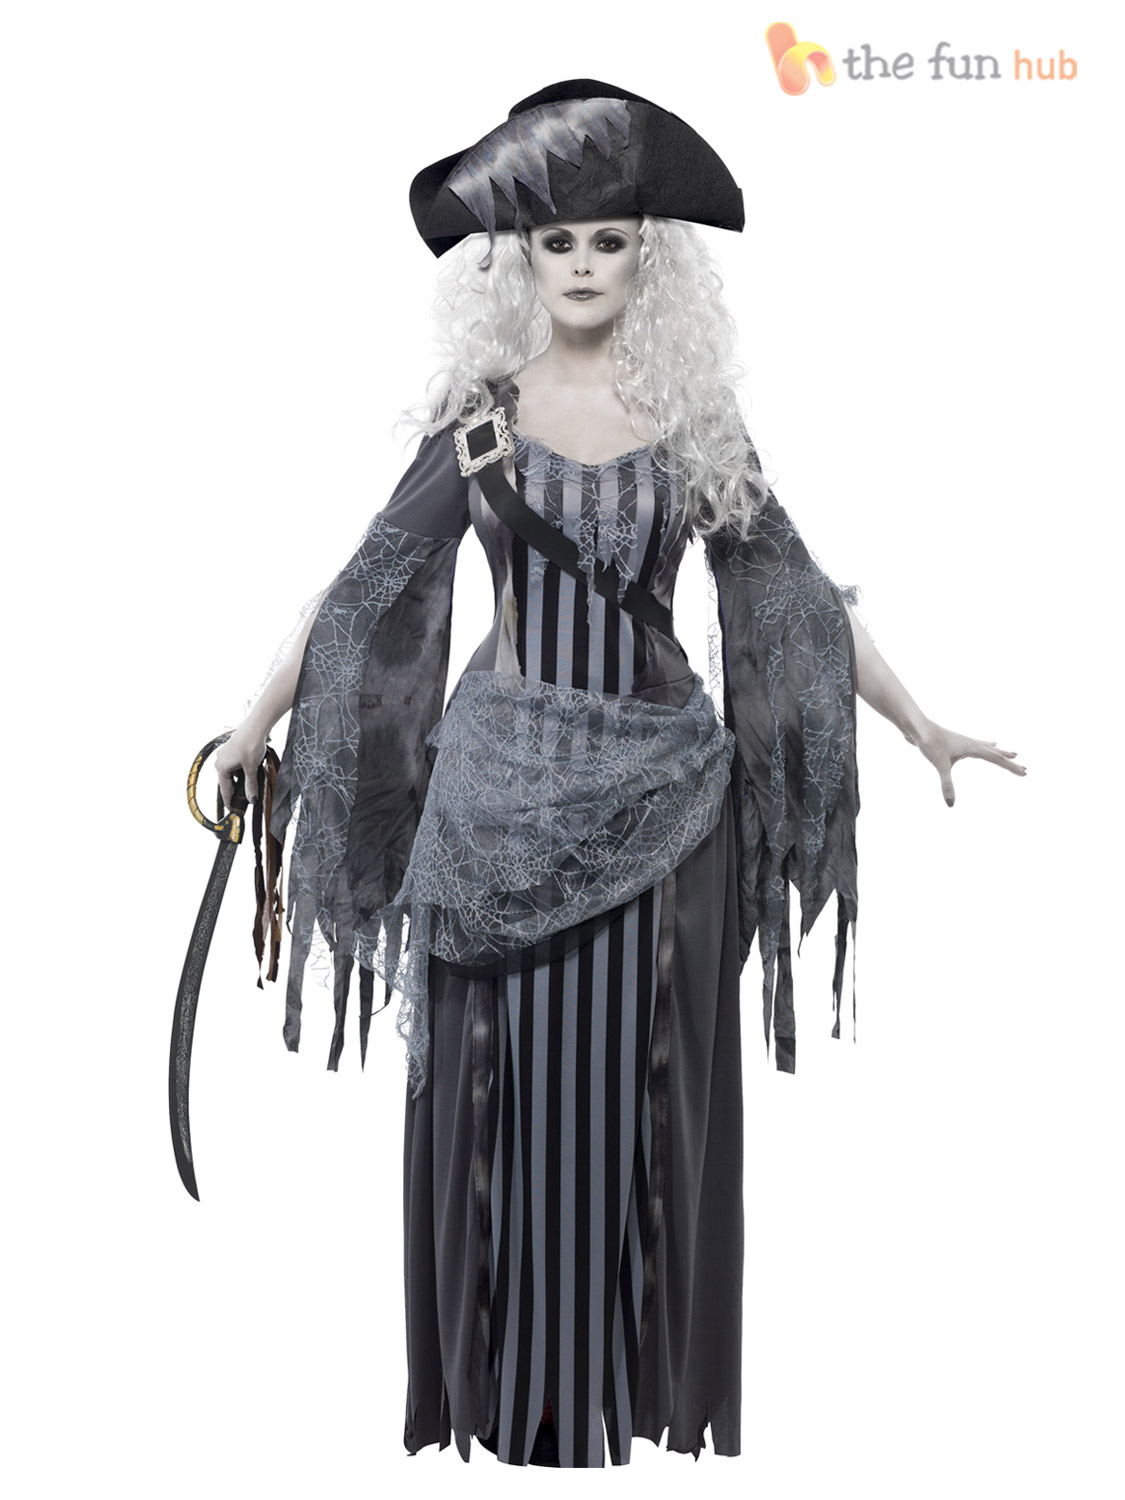 Ladies zombie pirate costume ghost ship womens halloween fancy dress ladies zombie pirate costume ghost ship womens halloween solutioingenieria Choice Image